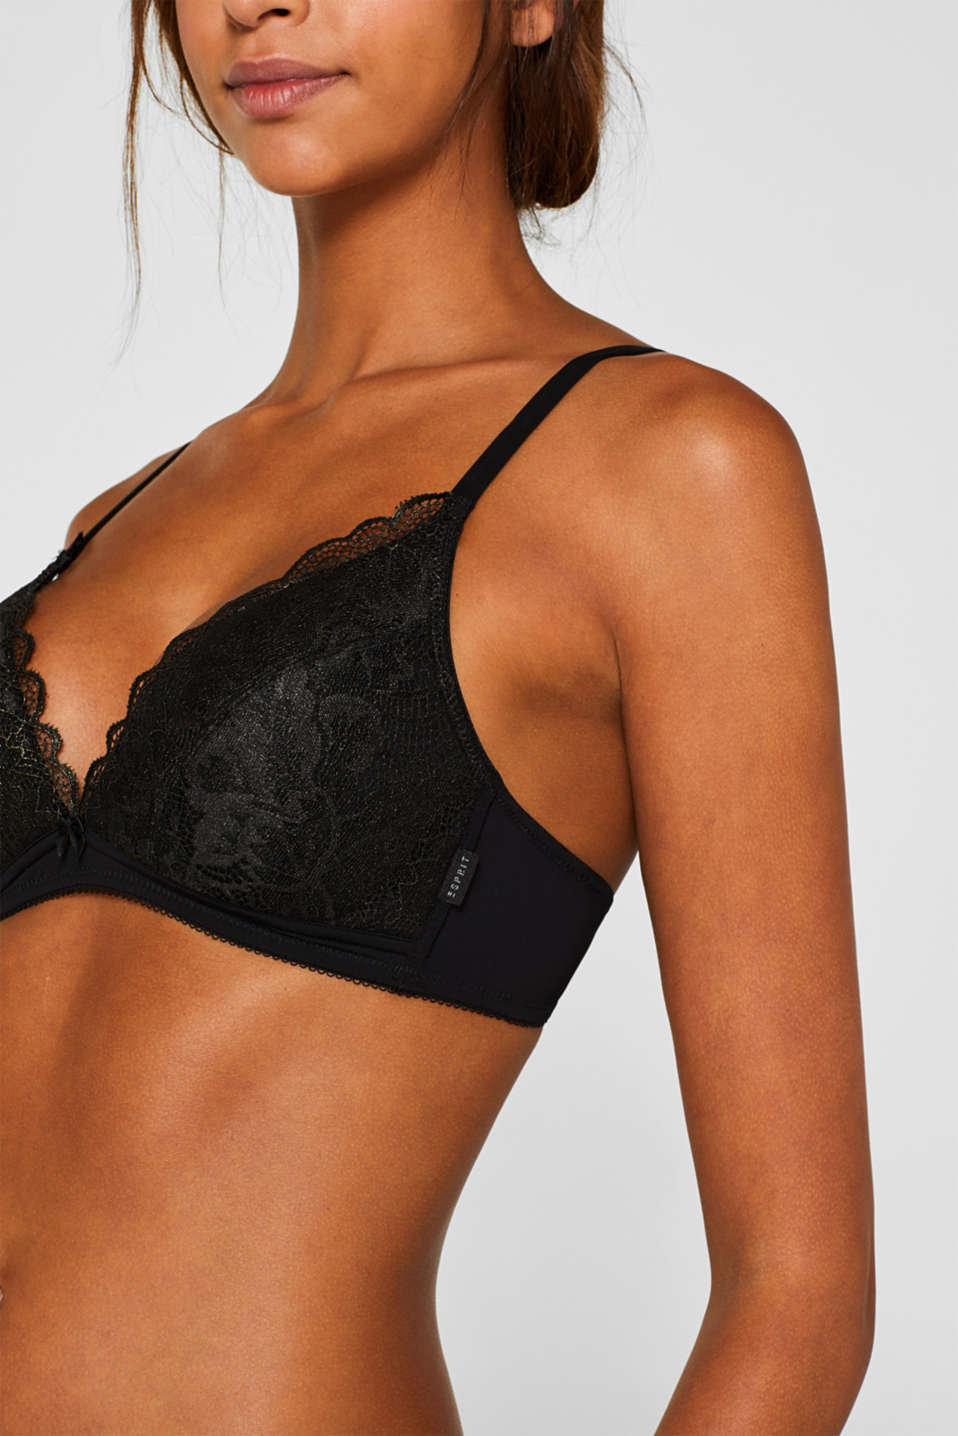 Padded, non-wired bra made of shiny, matte lace, BLACK, detail image number 2